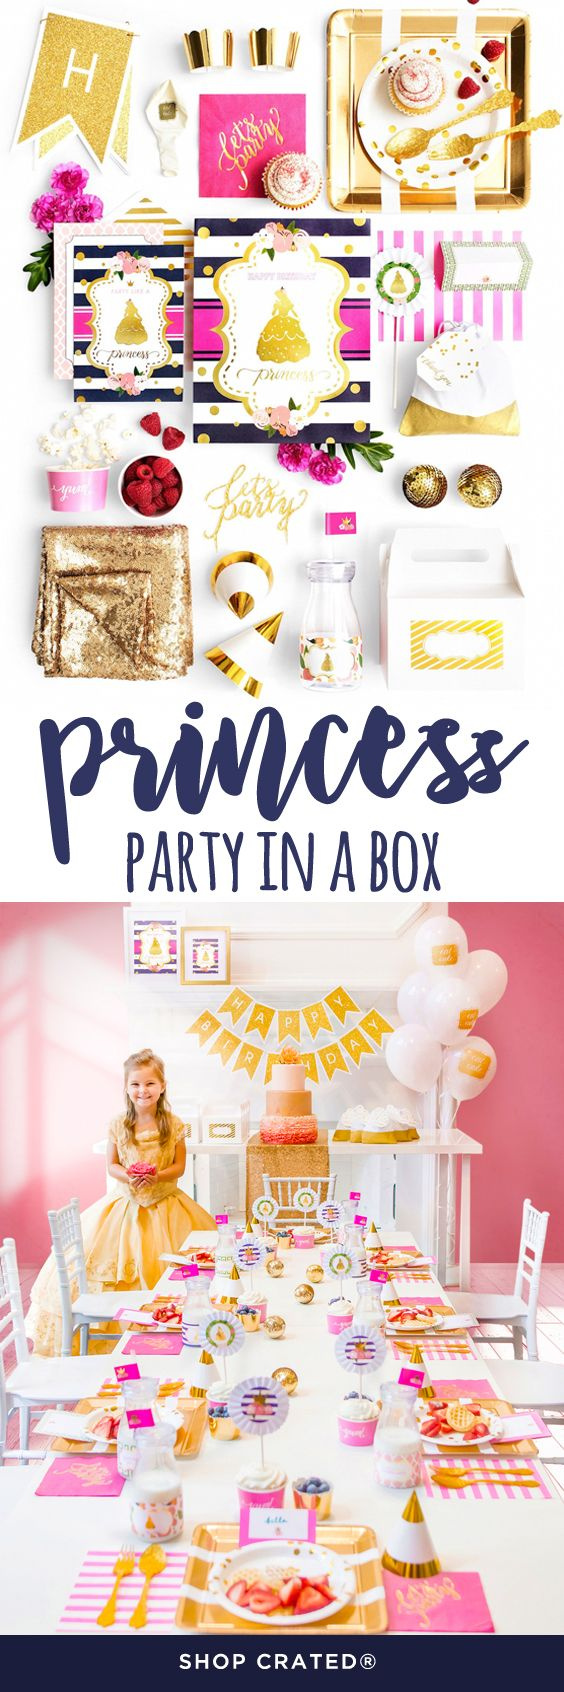 All the princess party supplies and princess birthday party ideas you need. This princess birthday party in a box has it all... just add cake and kids!